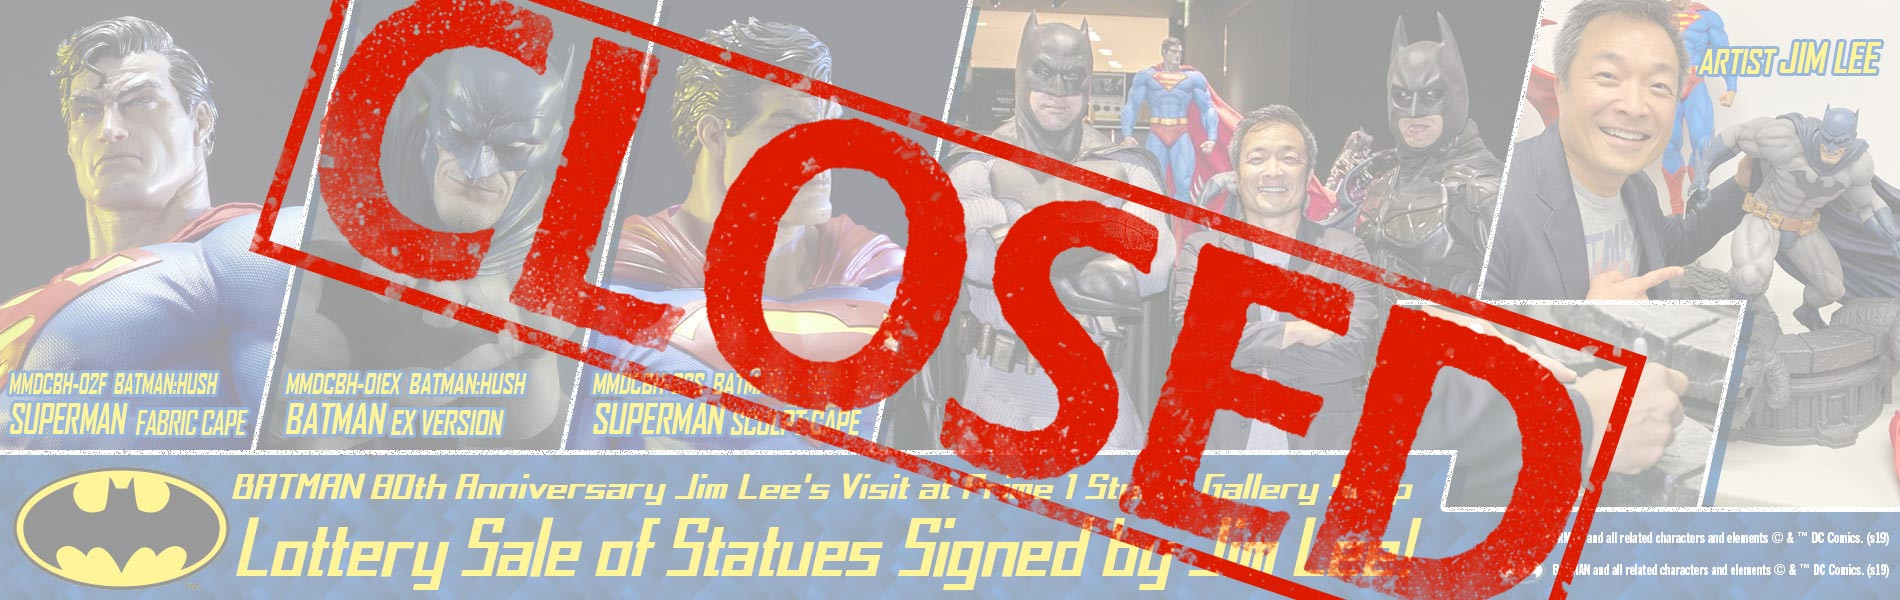 Lottery Sale of Statues Signed by Jim Lee is CLOSED!